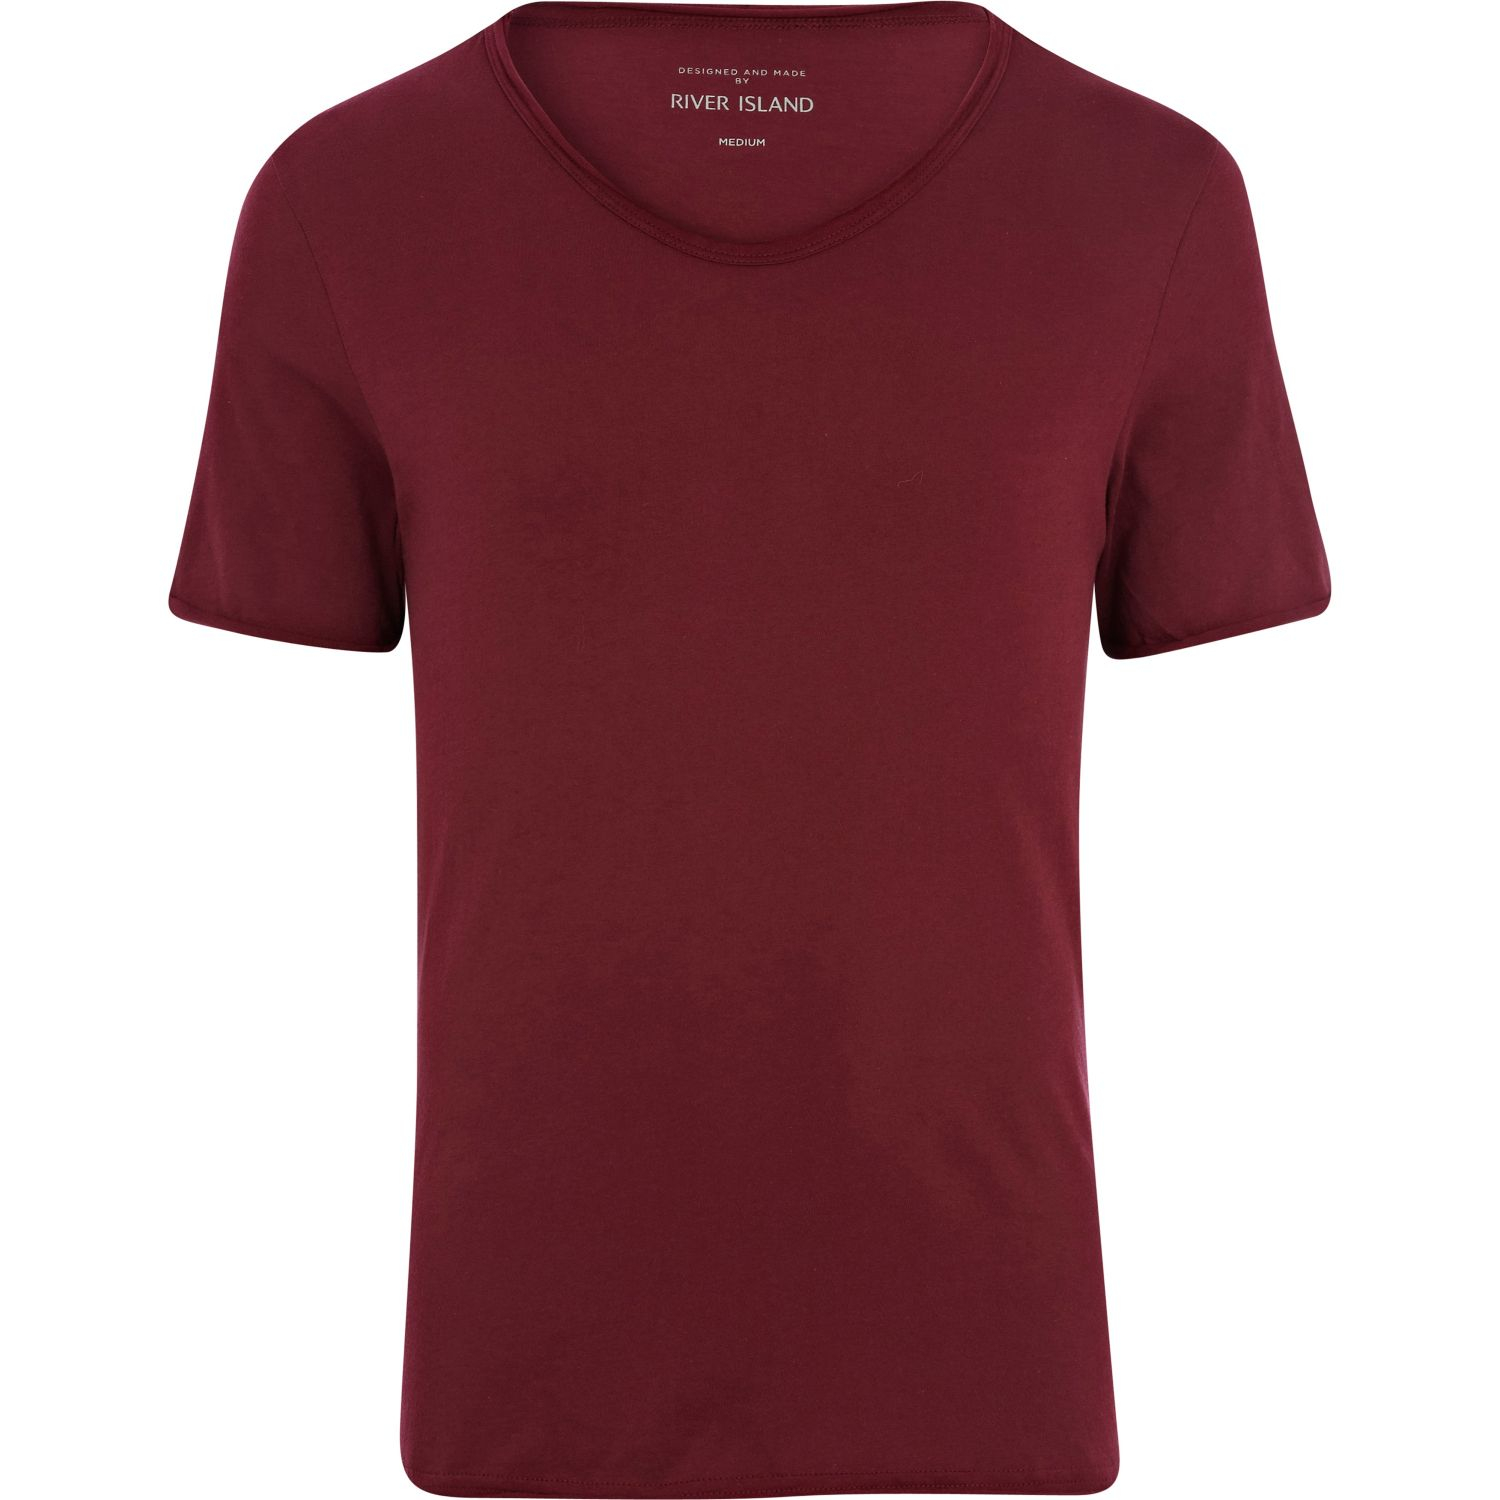 Lyst river island low scoop neck t shirt in red for men for The red t shirt company